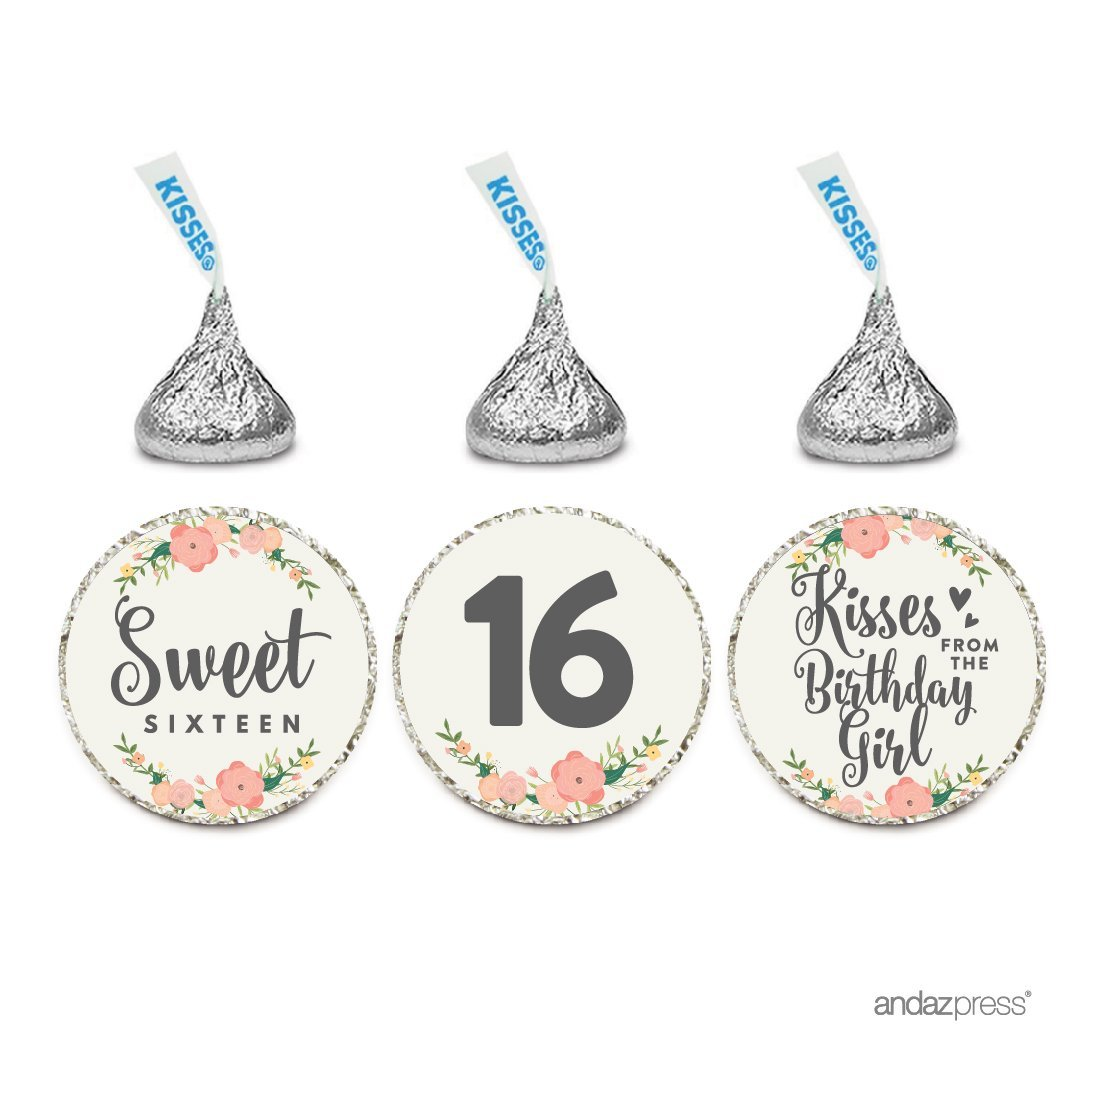 Chocolate Drop Labels Trio, Fits Hershey's Kisses, Sweet 16 Birthday, Floral Roses, 216-Pack